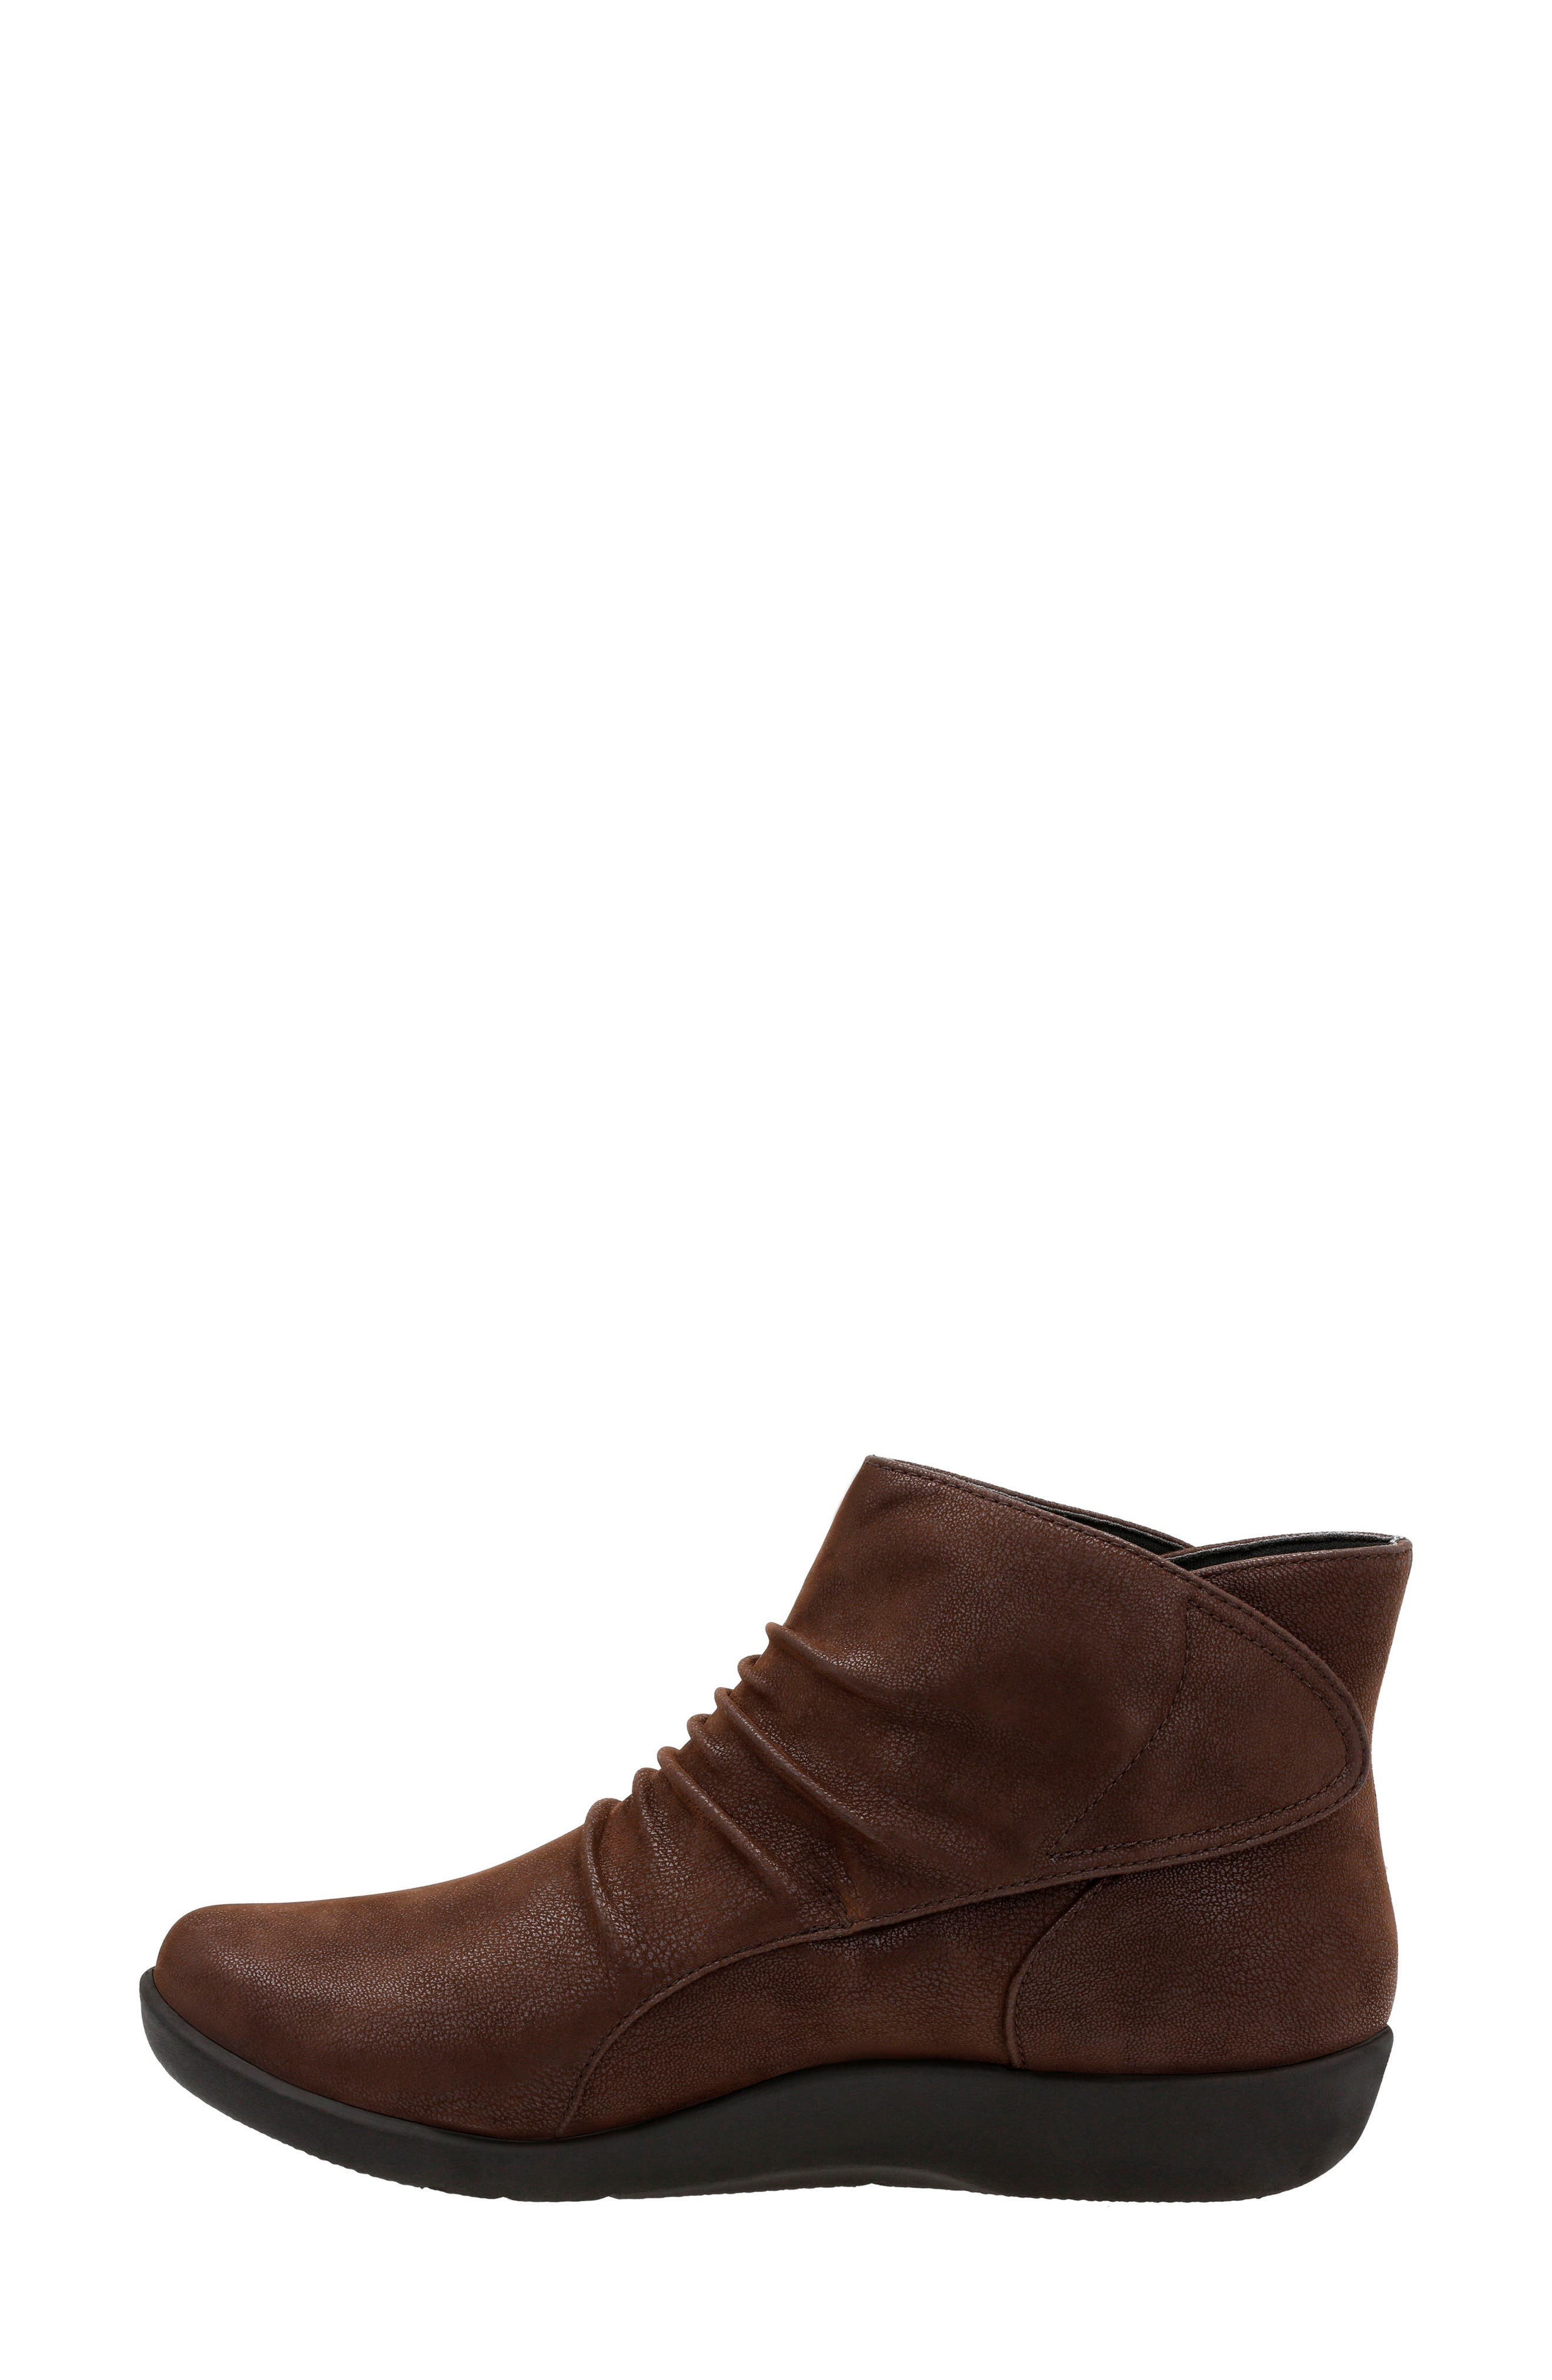 Sillian Sway Boot,                             Alternate thumbnail 2, color,                             BROWN FABRIC